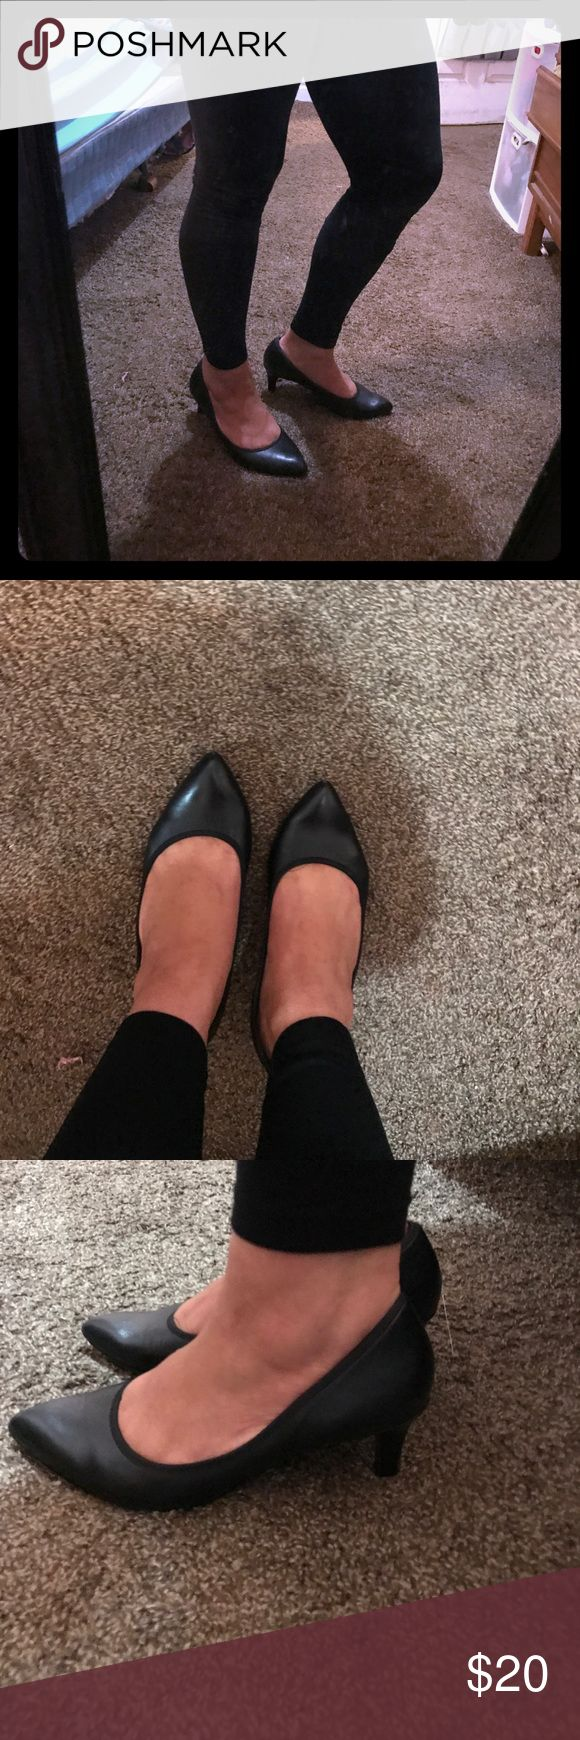 Naturalizer Black heels size 8.5 Cute black heels only wore once size 8.5 they are super comfy and true to size Naturalizer Shoes Heels